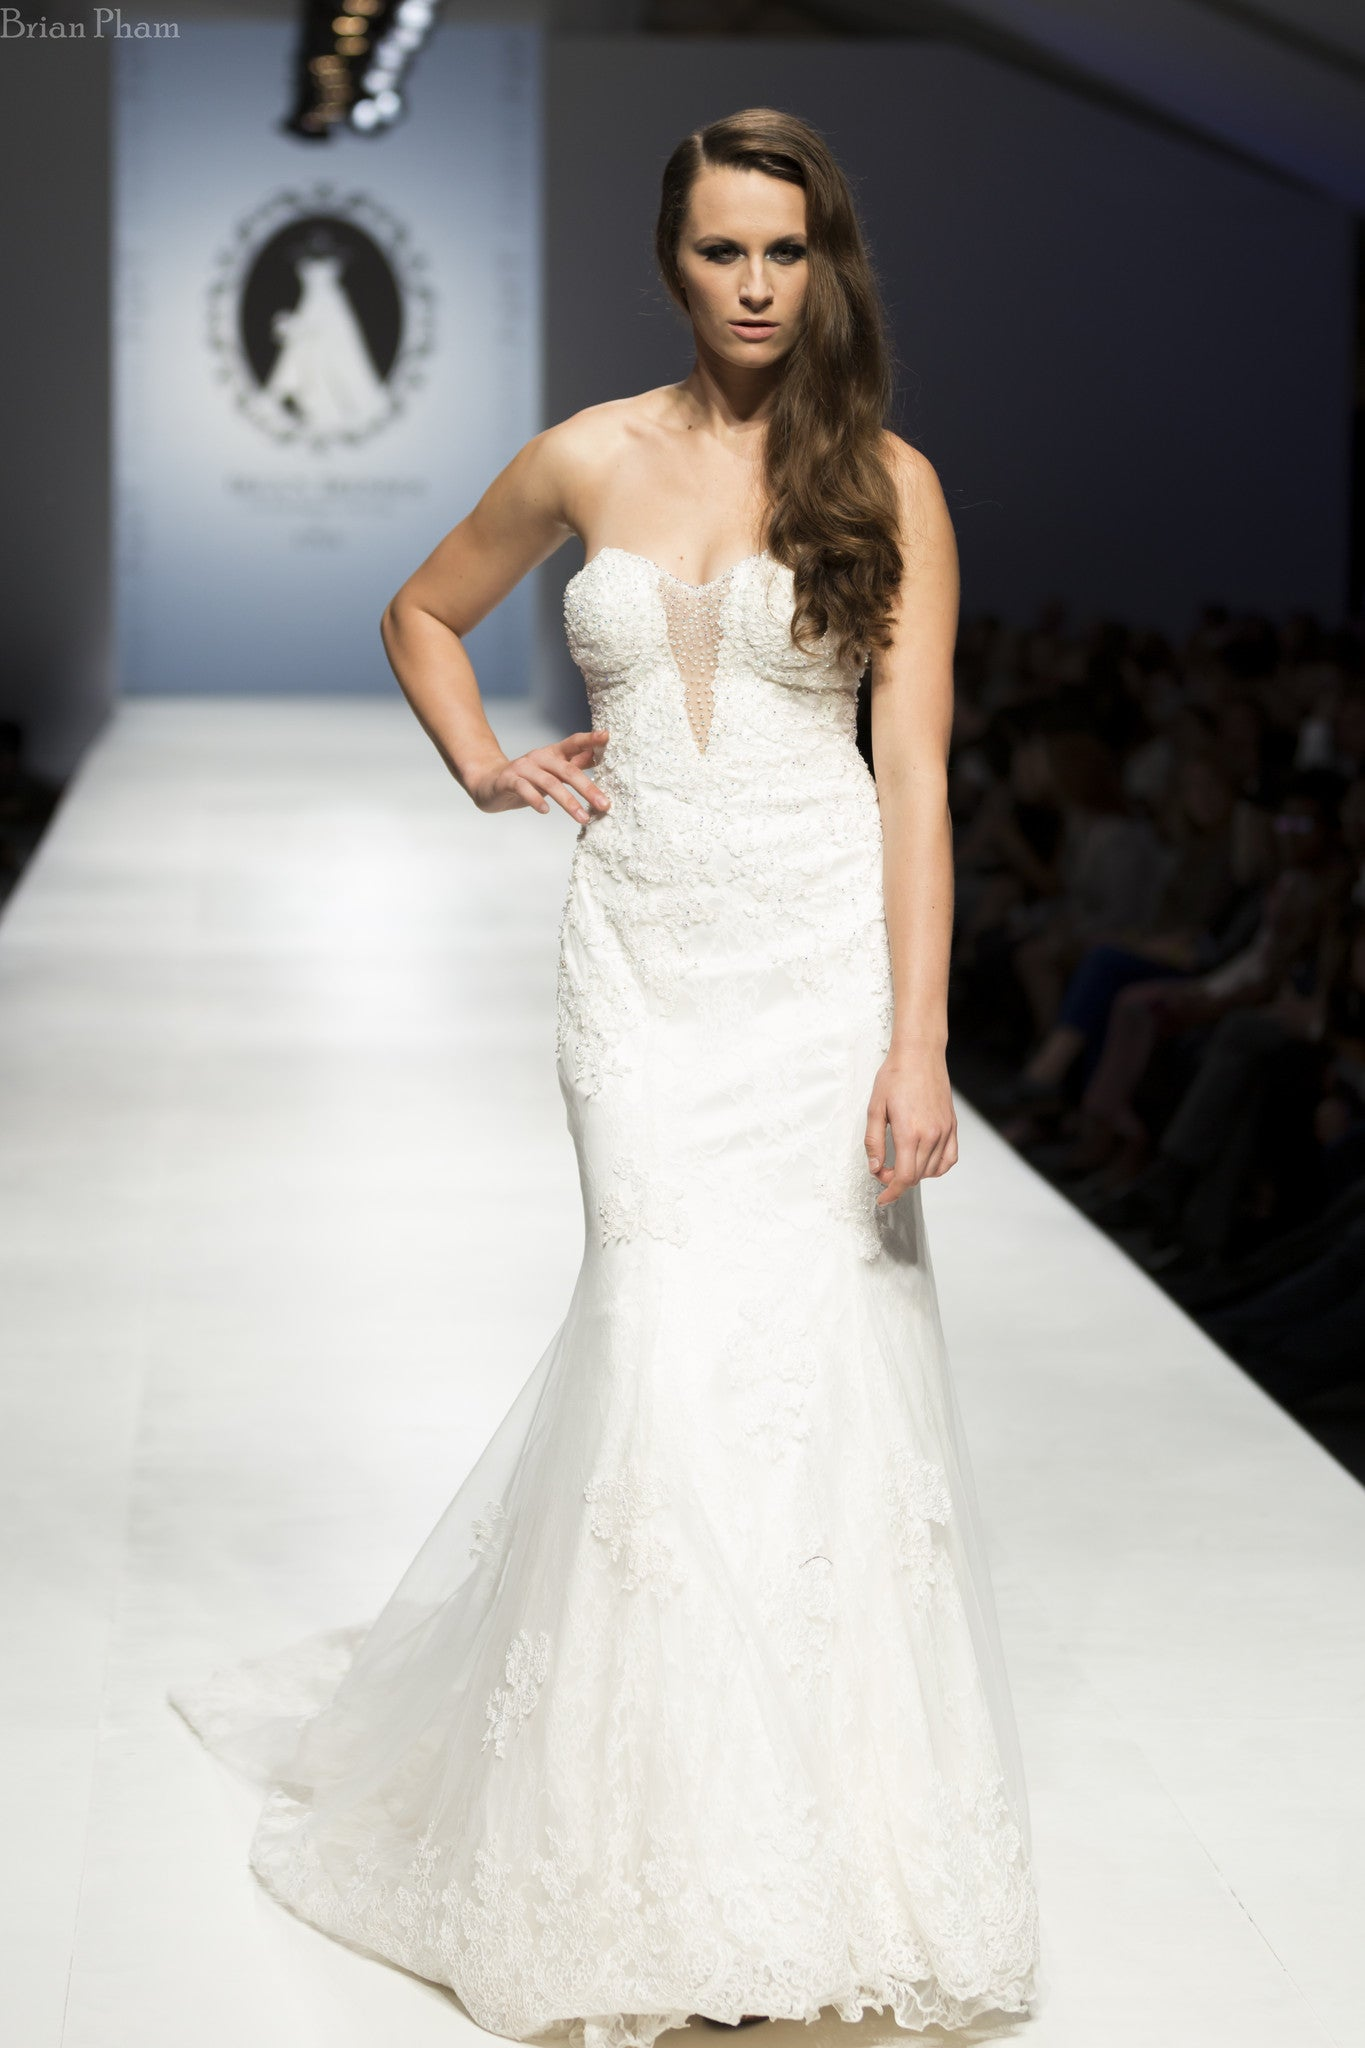 Strapless Plunging Neckline Mermaid Wedding Dress (Style Rosaleen #PB252) - Dream Dresses by P.M.N  - 4